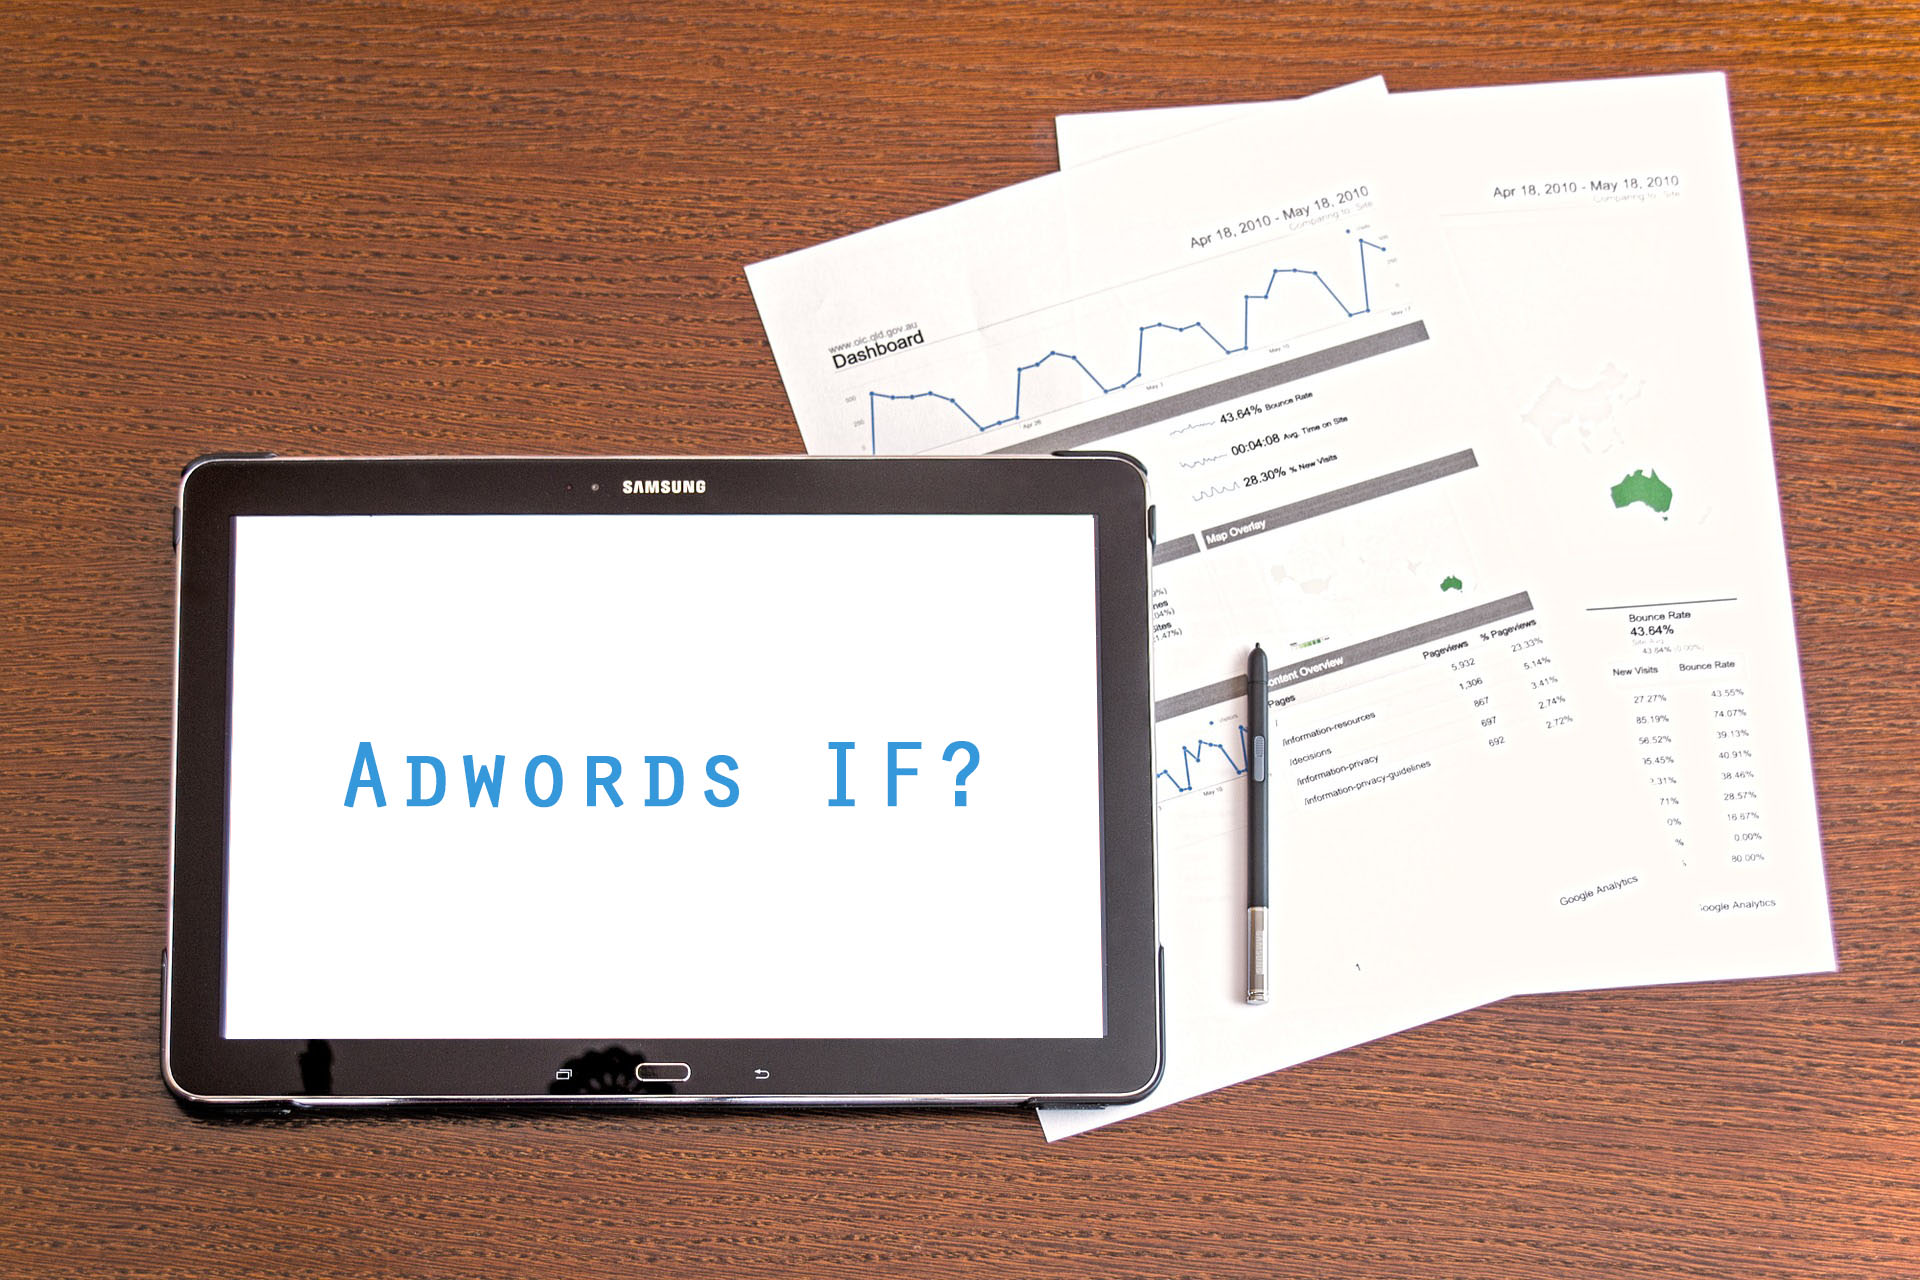 adwords-if.jpg